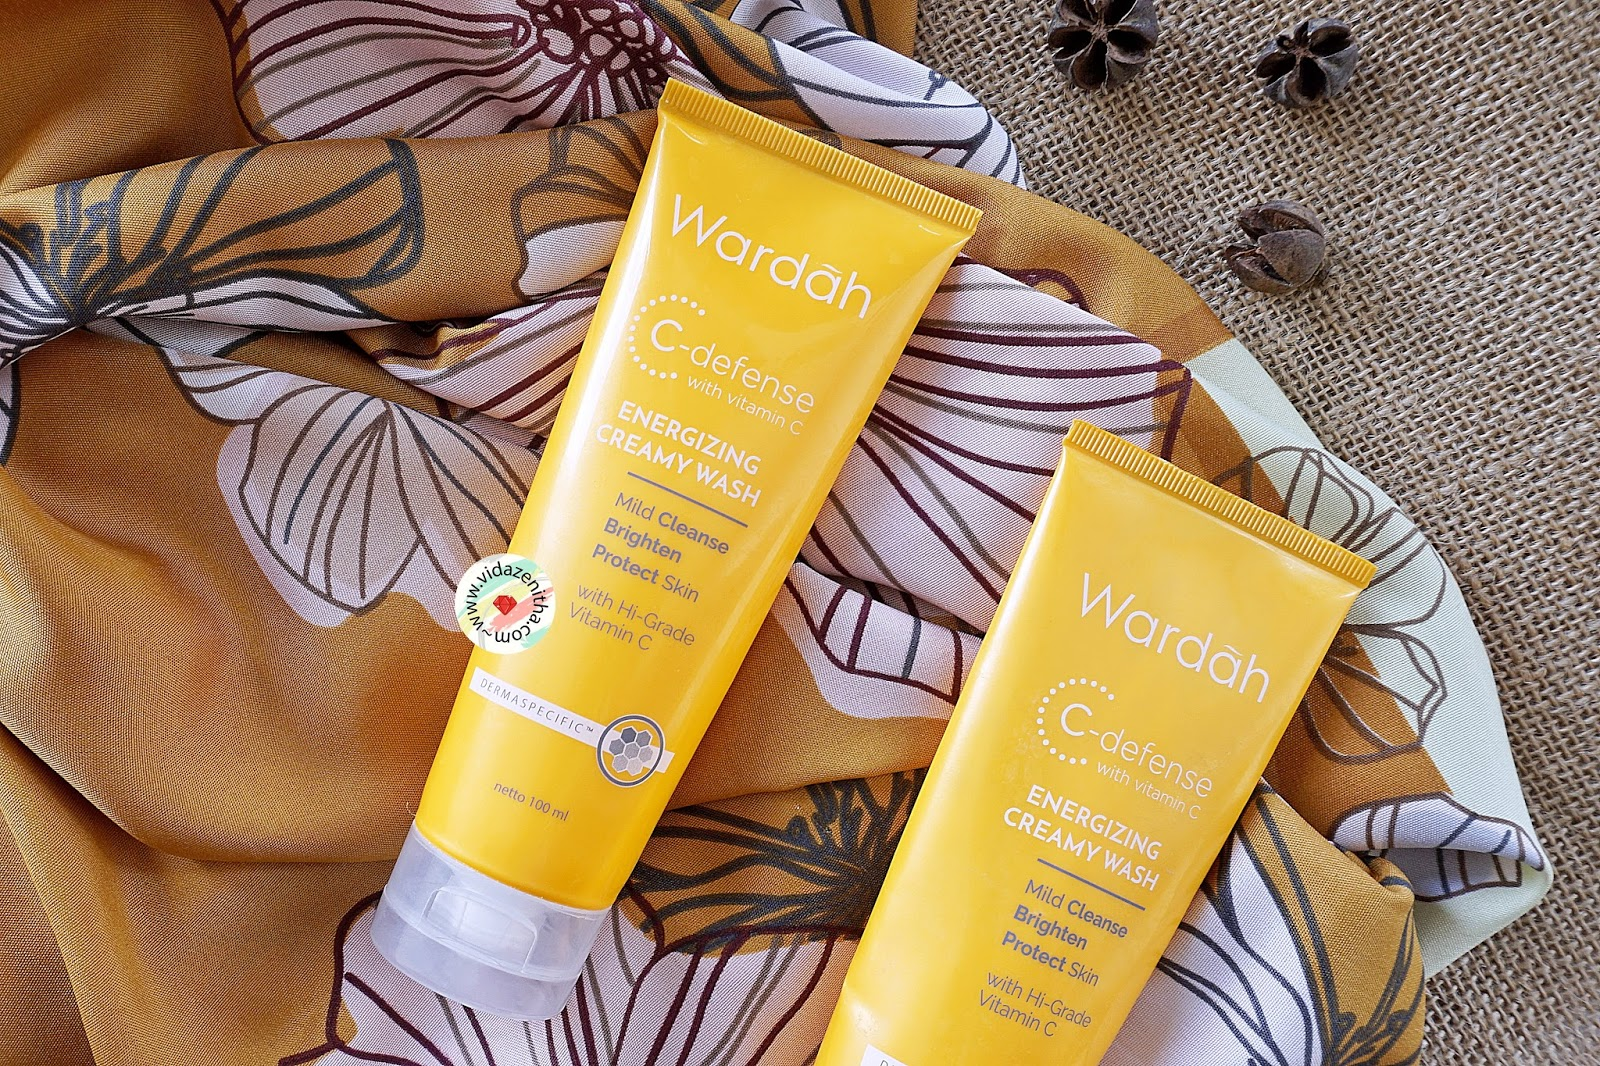 Packaging Wardah C Defense Energizing Creamy Wash